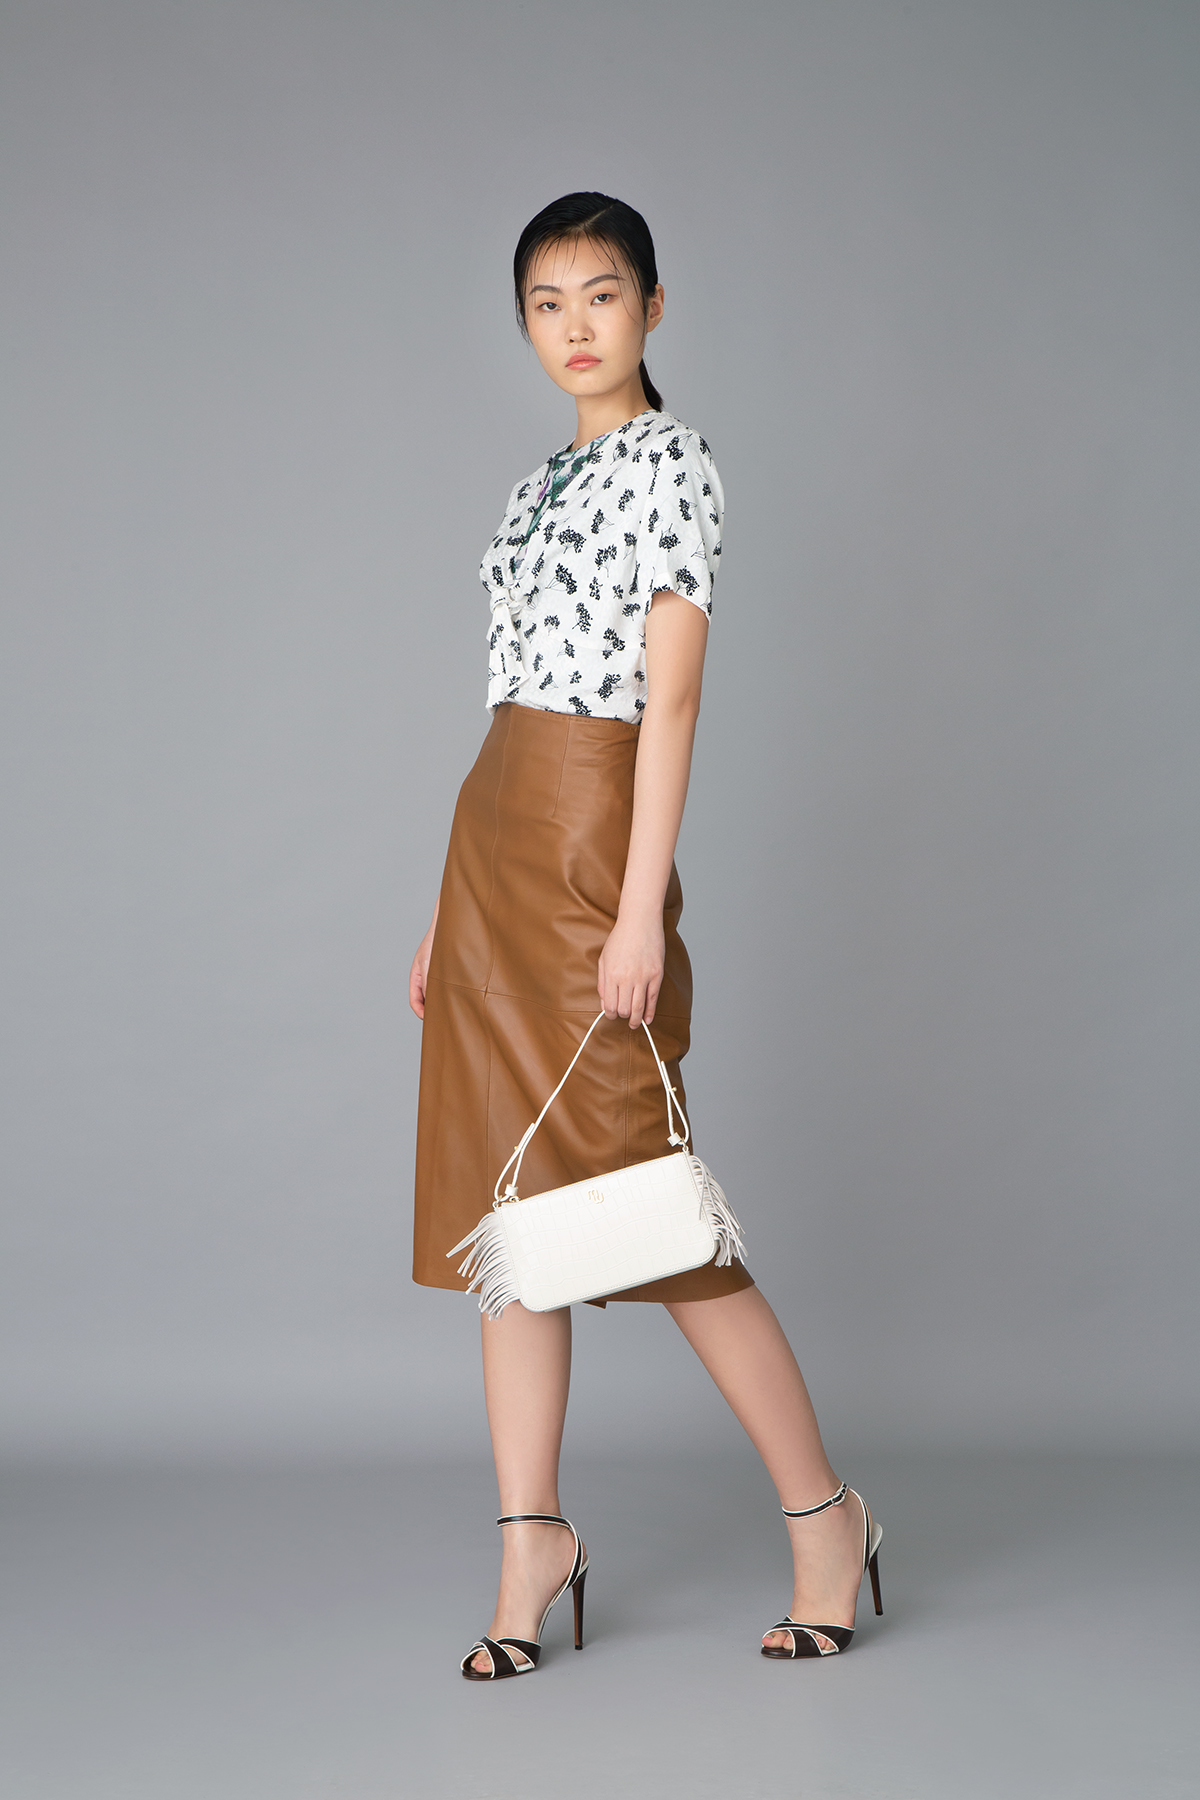 Maje green floral printed jersey top $1,045 and white floral printed cotton shirt $1,790 Max Mara brown leather skirt $6,980 Polo Ralph Lauren high heels (Price to be confirmed) Maje white handbag $2,345